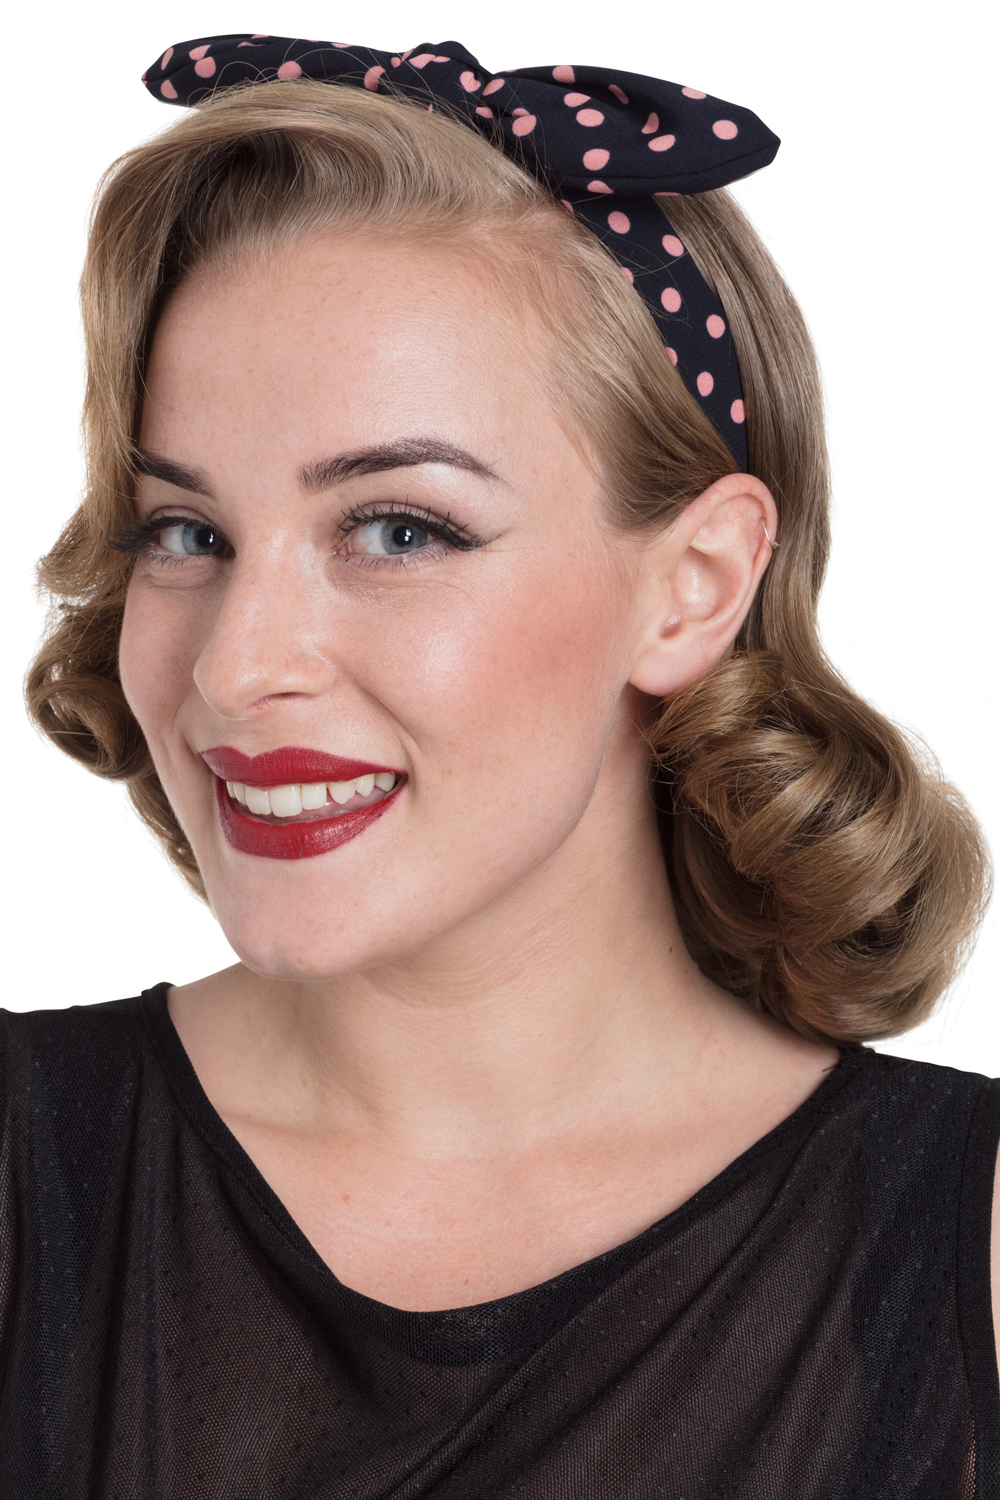 Structured Bow Headband in Pink Polka Dot